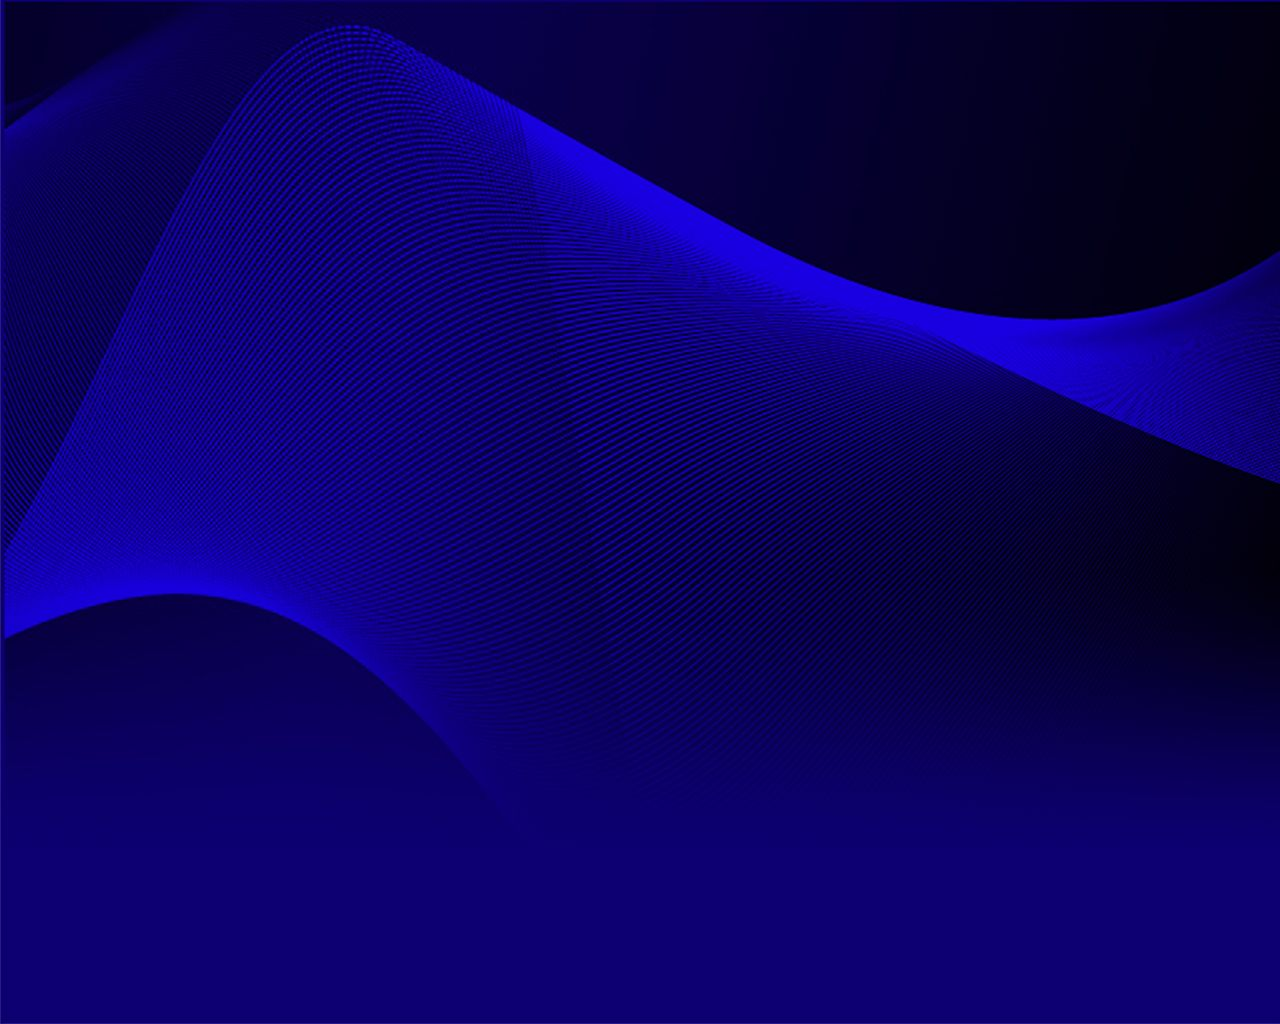 Royal Blue Wavy Abstract Web Background Royal Blue